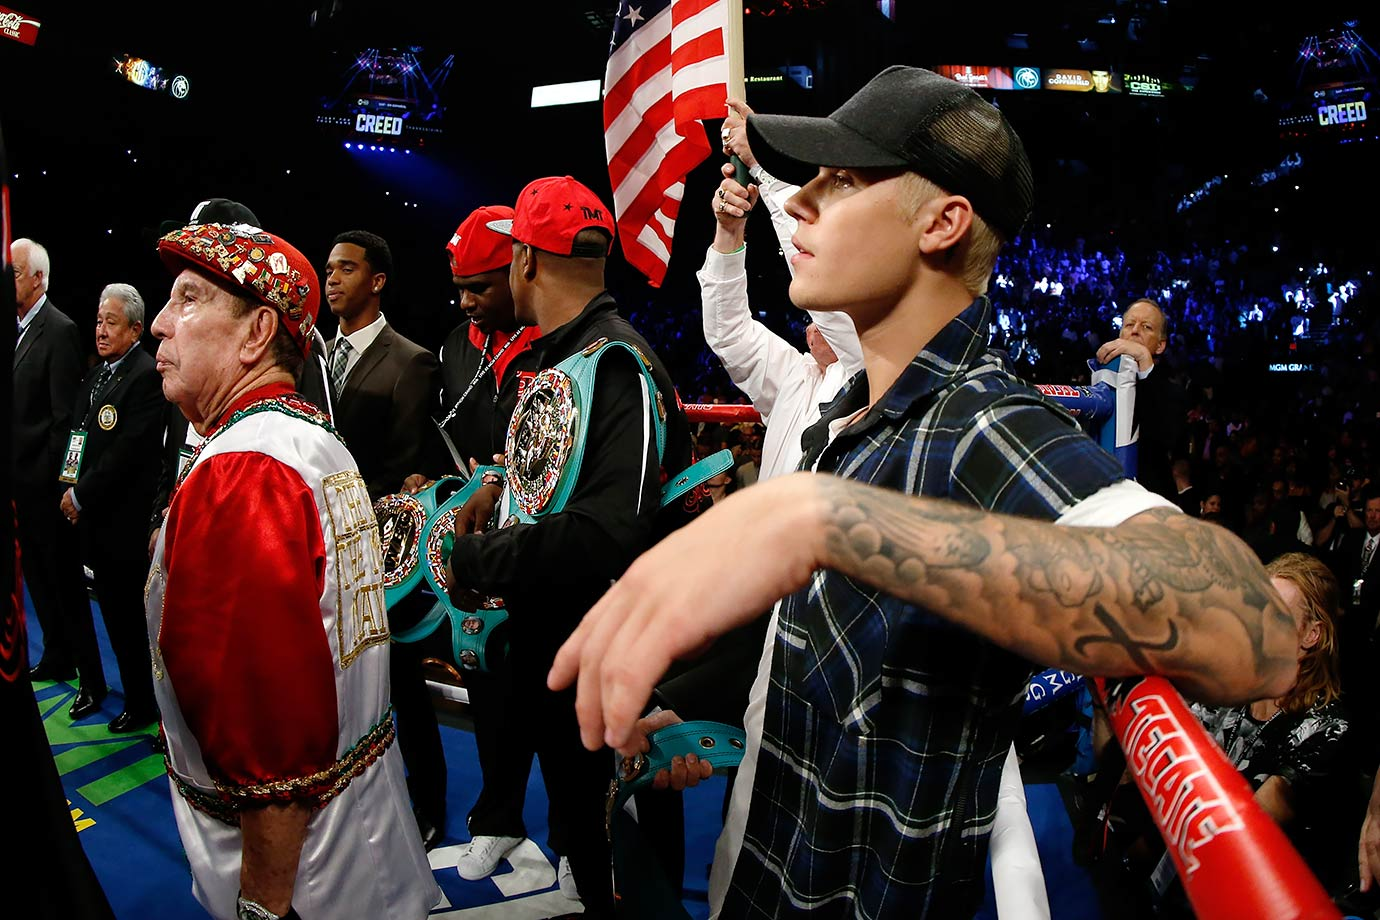 Justin Bieber stands in the ring prior to Floyd Mayweather Jr.'s WBC/WBA welterweight title fight against Andre Berto on Sept. 12, 2015 at the MGM Grand Garden Arena in Las Vegas.